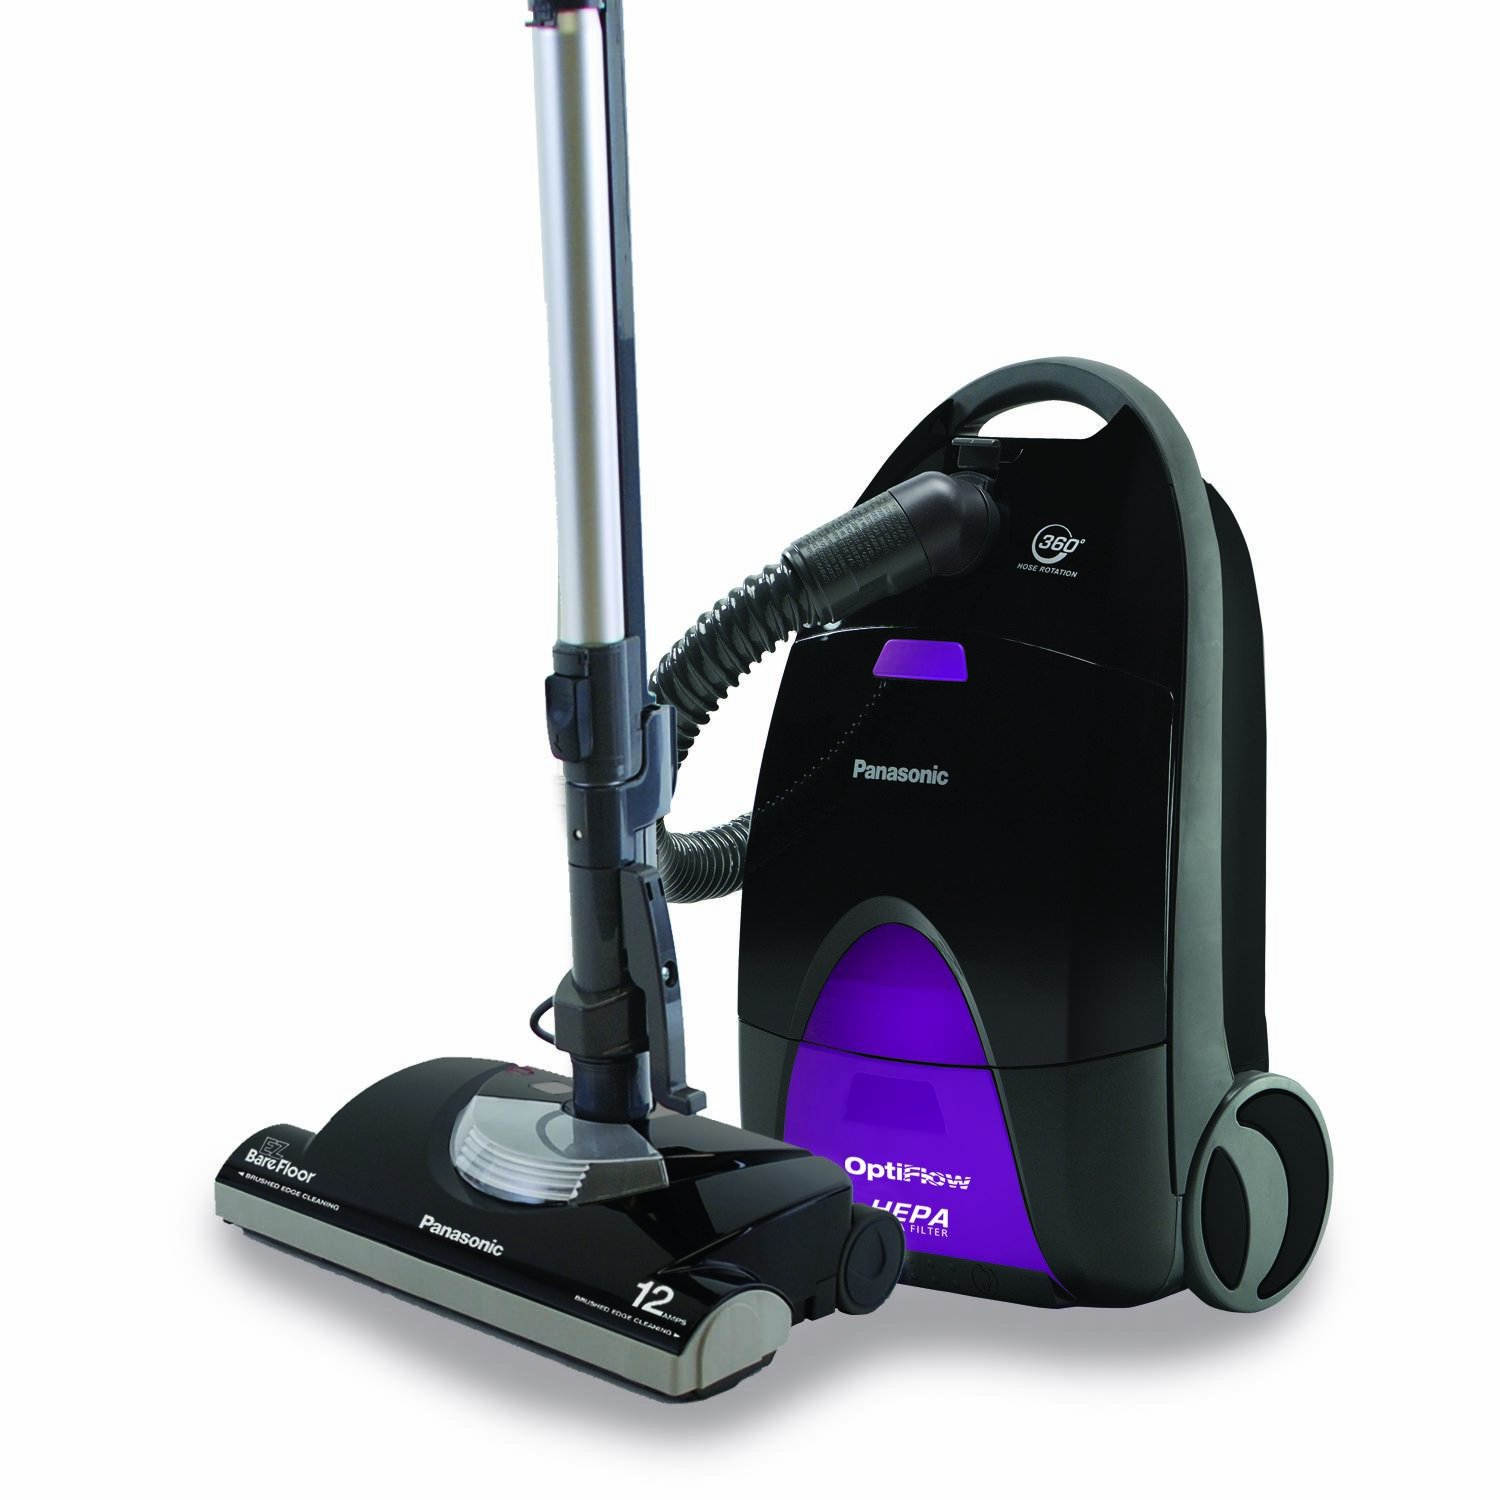 Panasonic MC CG937 OptiFlow Canister Vacuum Cleaner